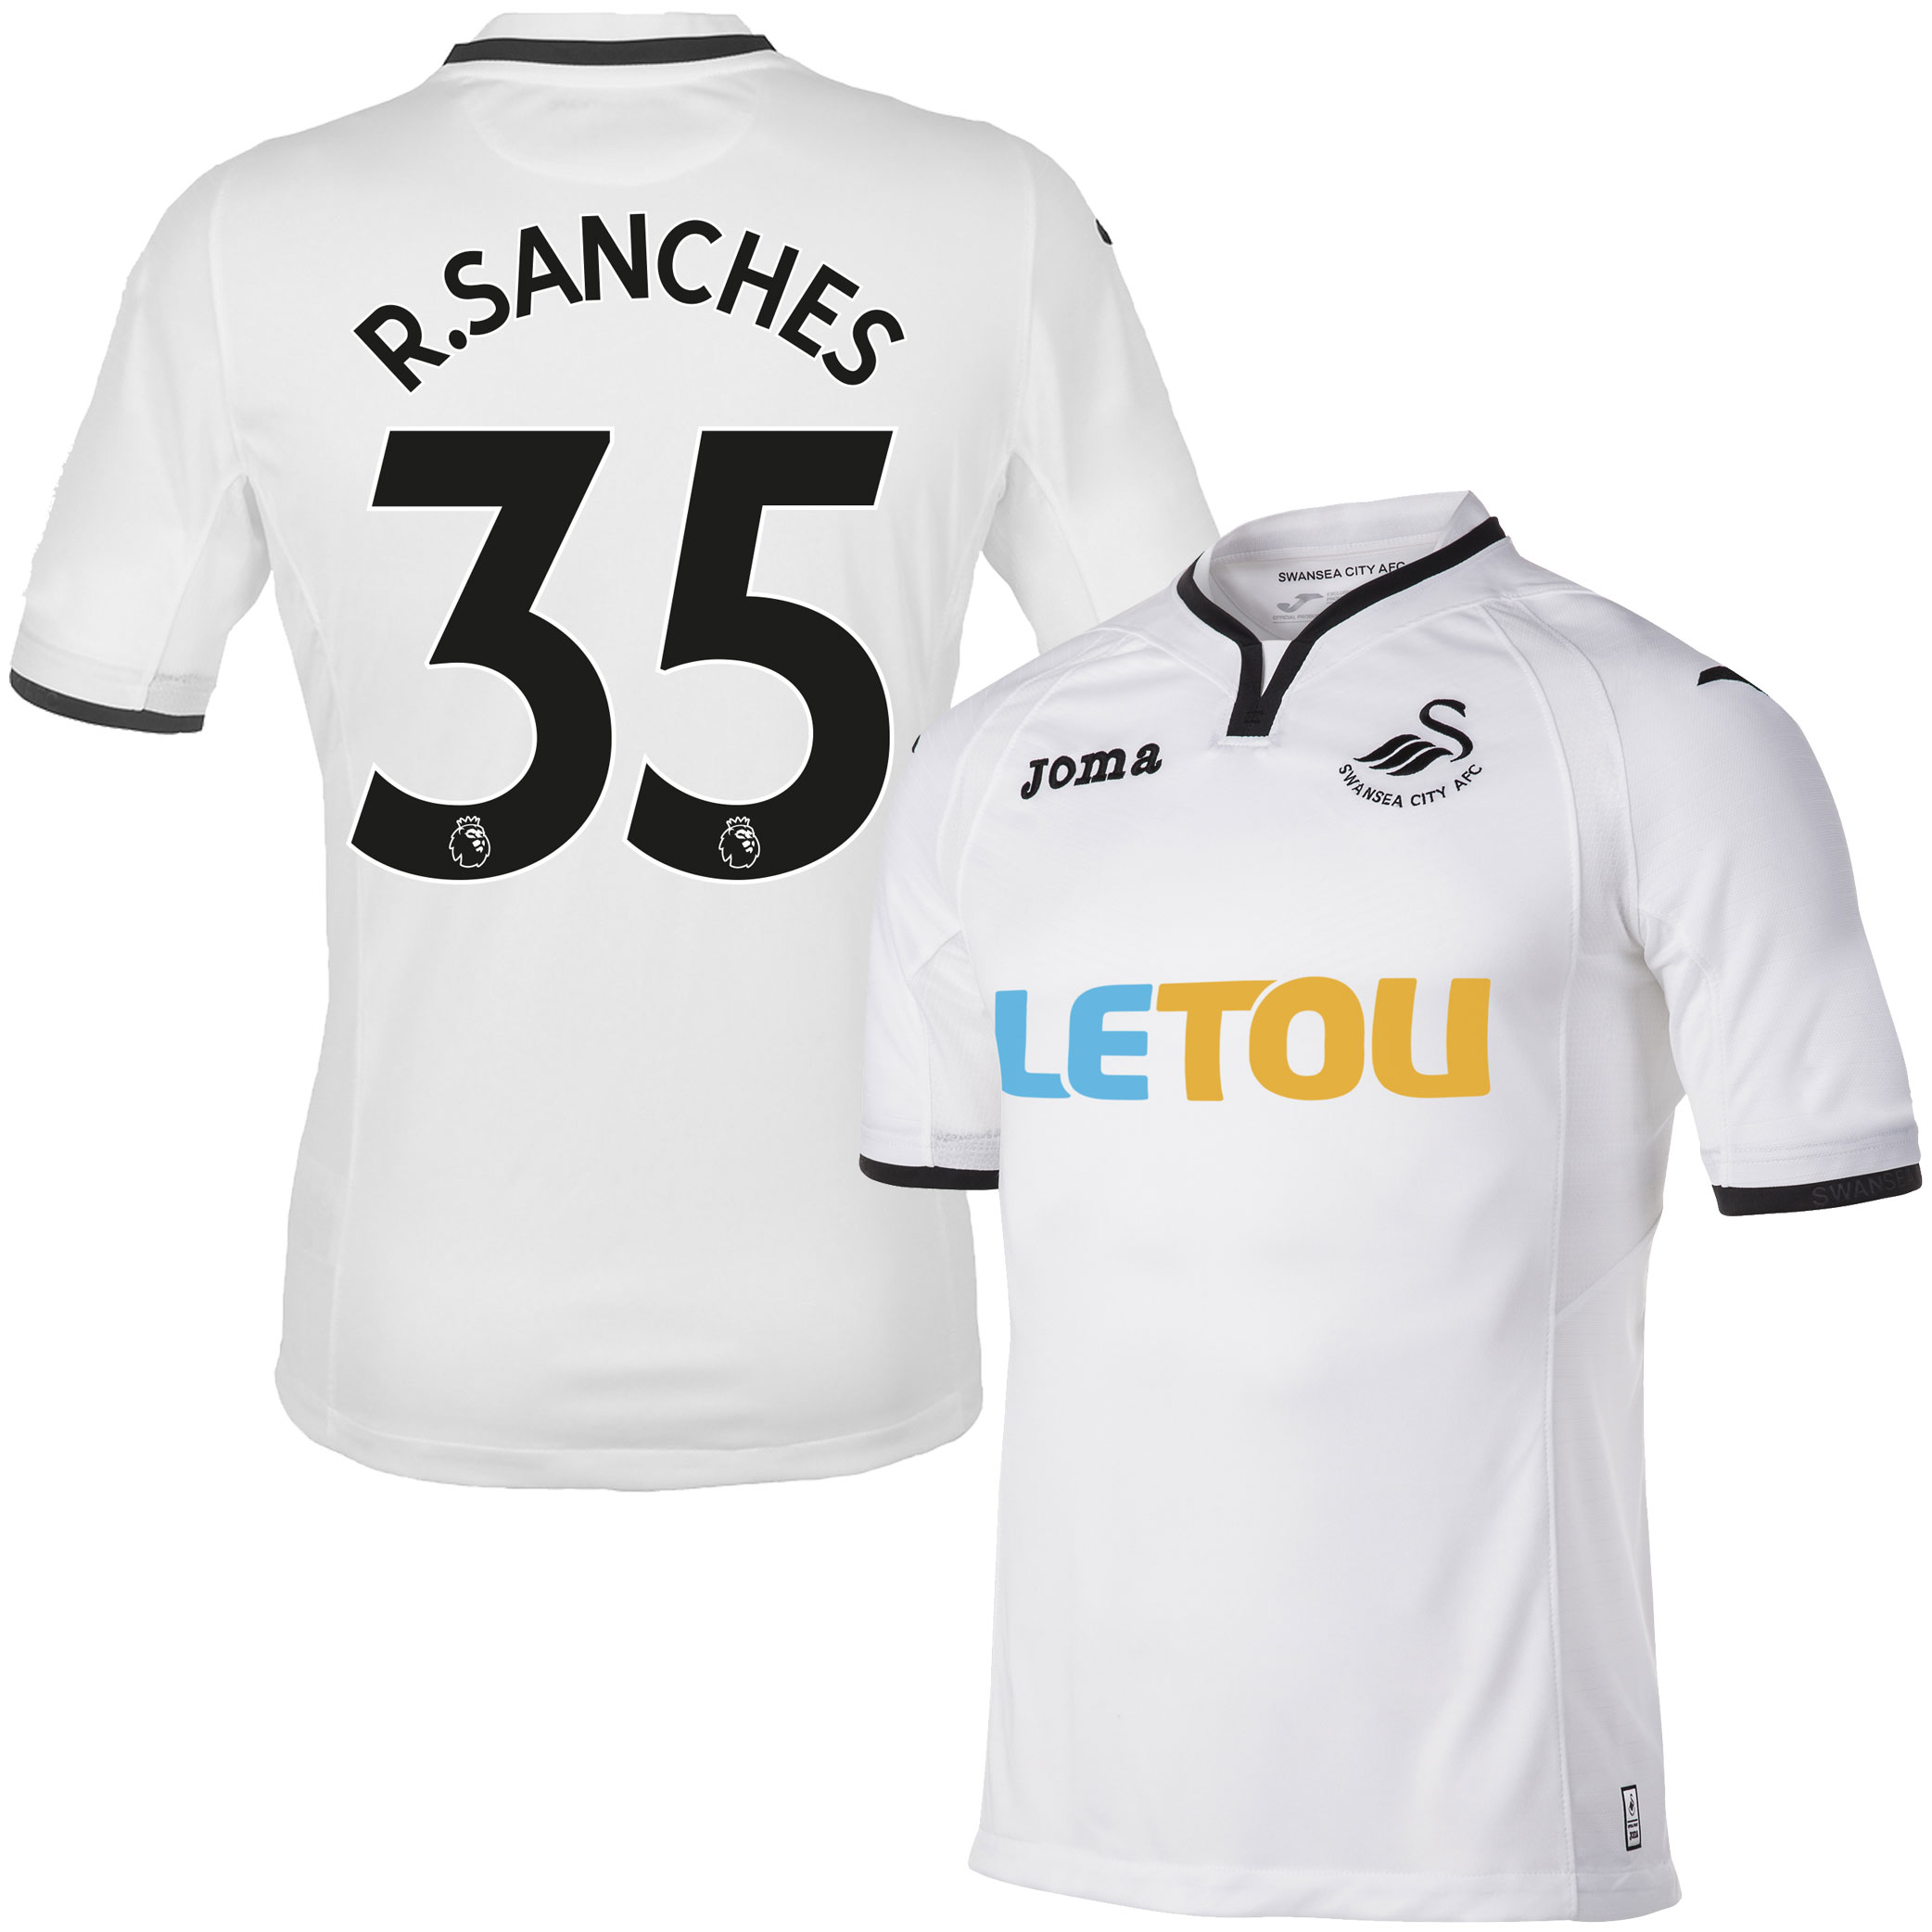 Swansea City Home R. Sanches Jersey 2017 / 2018 (Authentic EPL Printing) - S